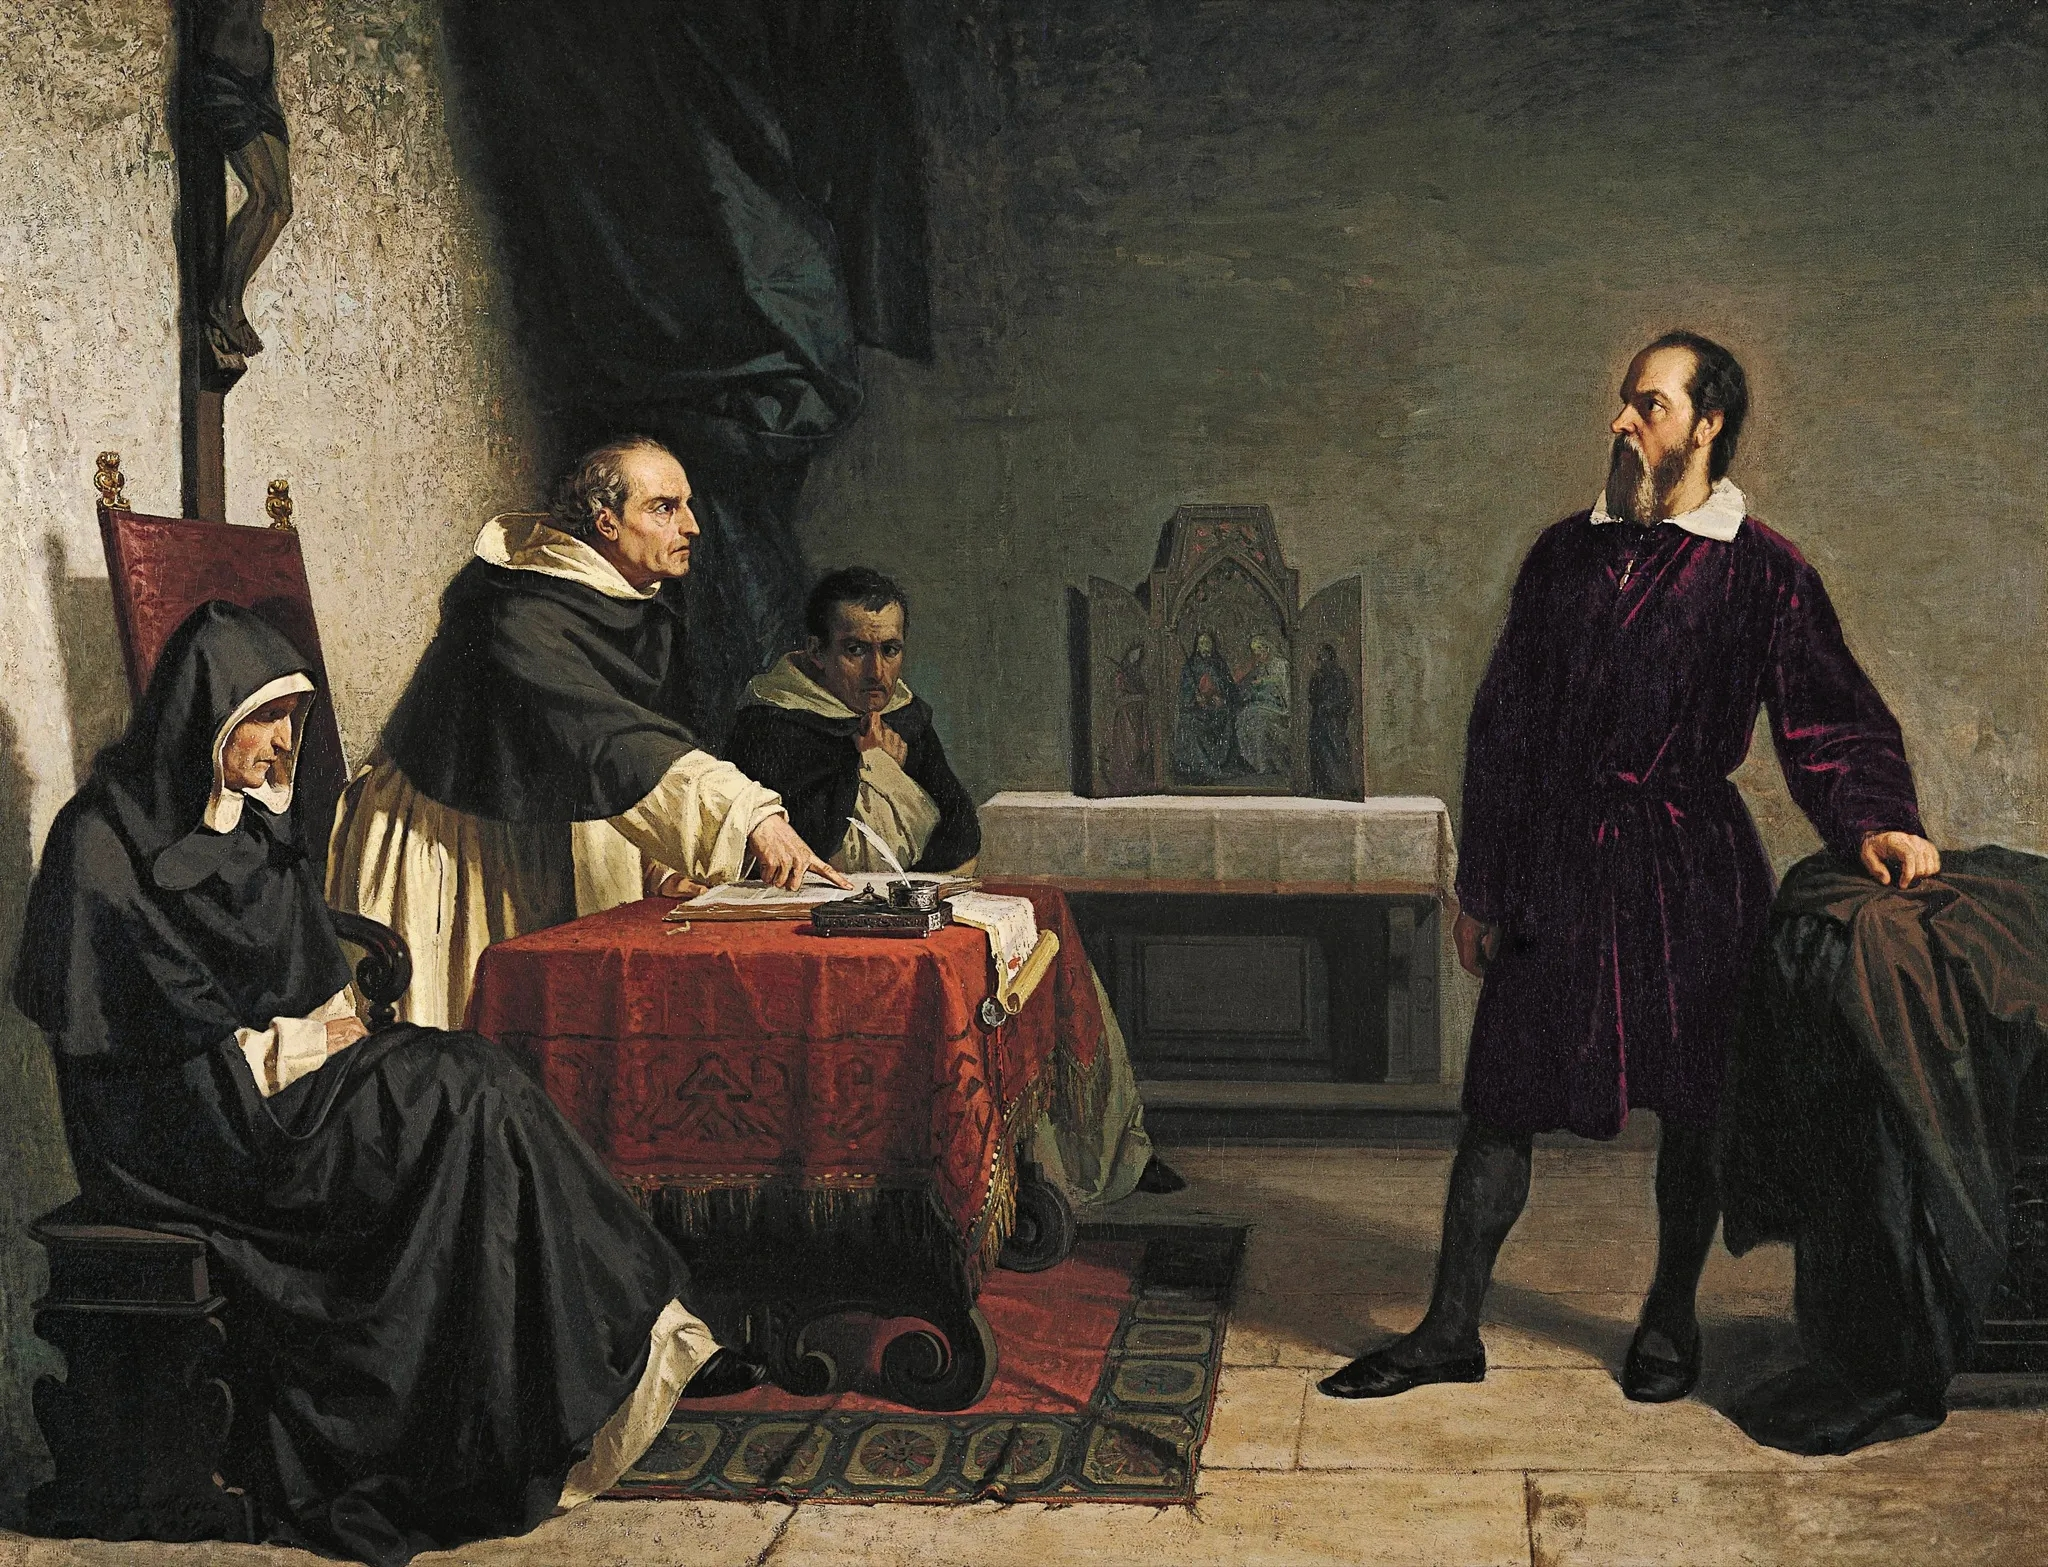 "The image ""http://upload.wikimedia.org/wikipedia/commons/8/88/Galileo_facing_the_Roman_Inquisition.jpg"" cannot be displayed, because it contains errors."